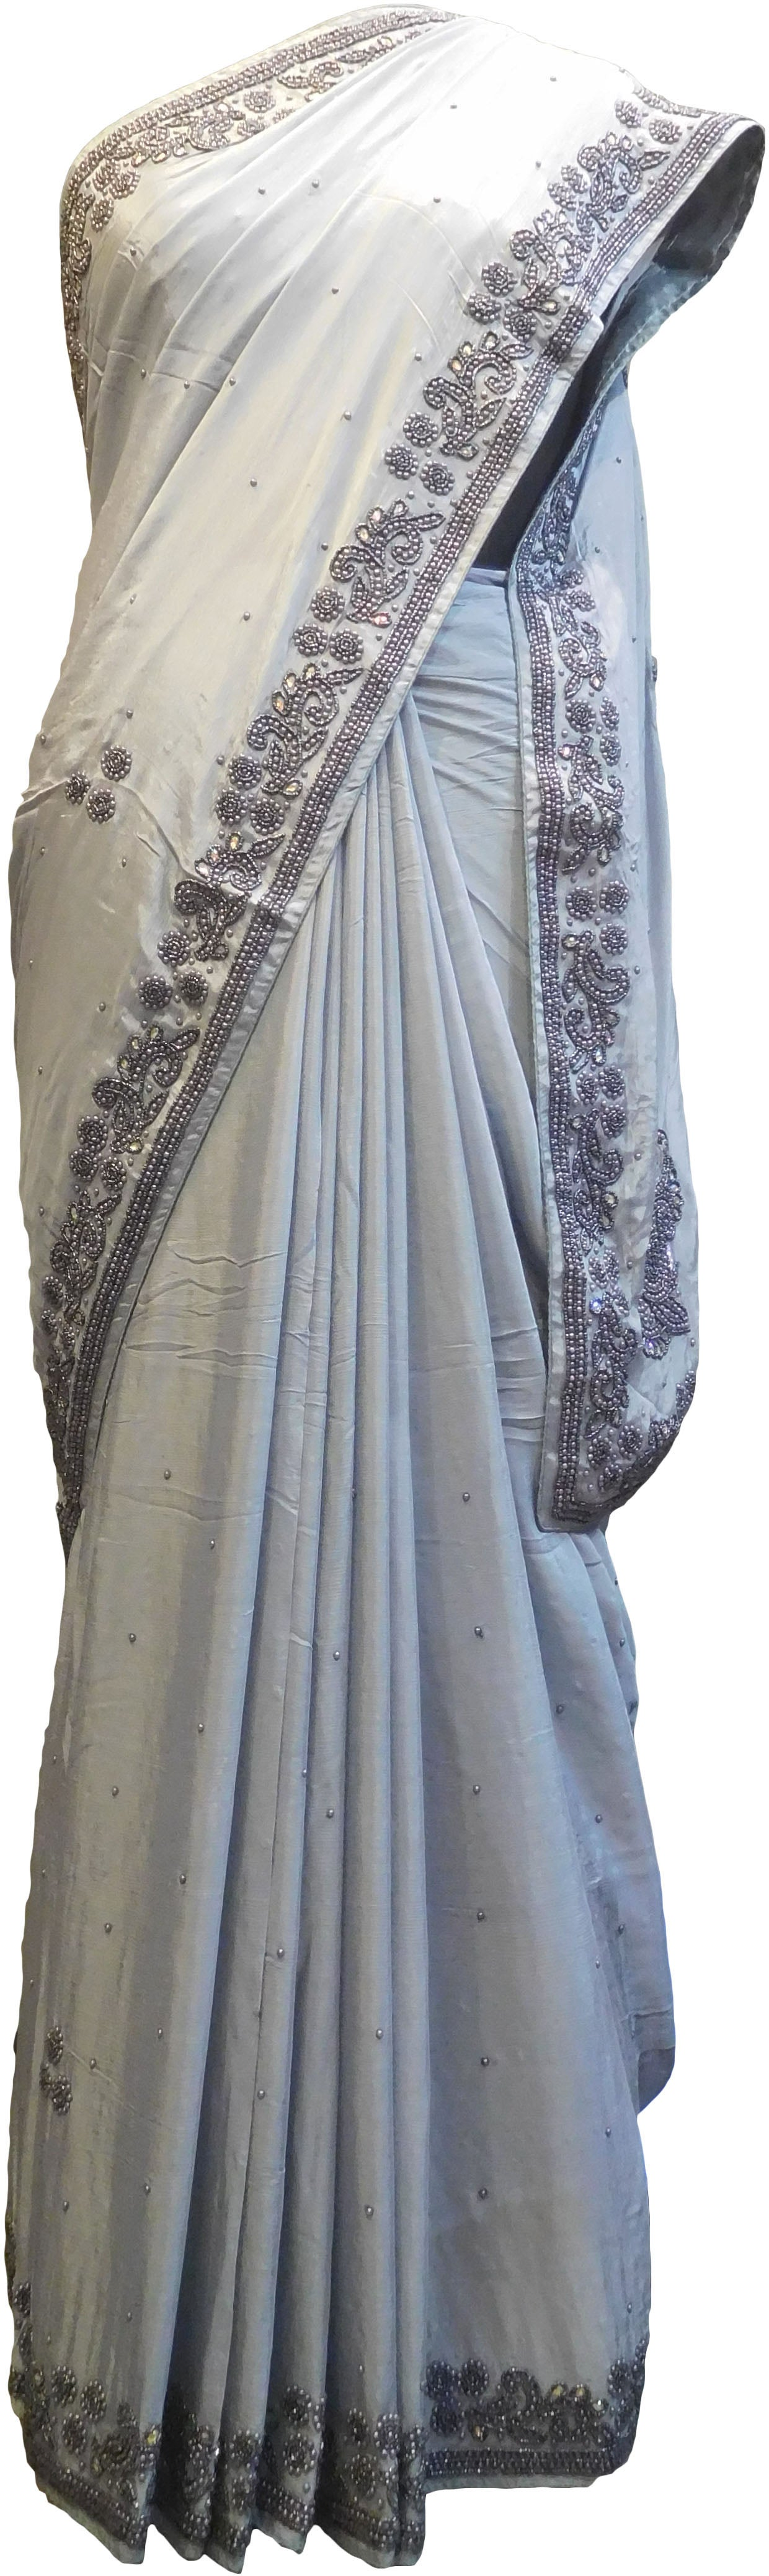 SMSAREE Grey Designer Wedding Partywear Satin Silk Stone Beads & Pearl Hand Embroidery Work Bridal Saree Sari With Blouse Piece F088